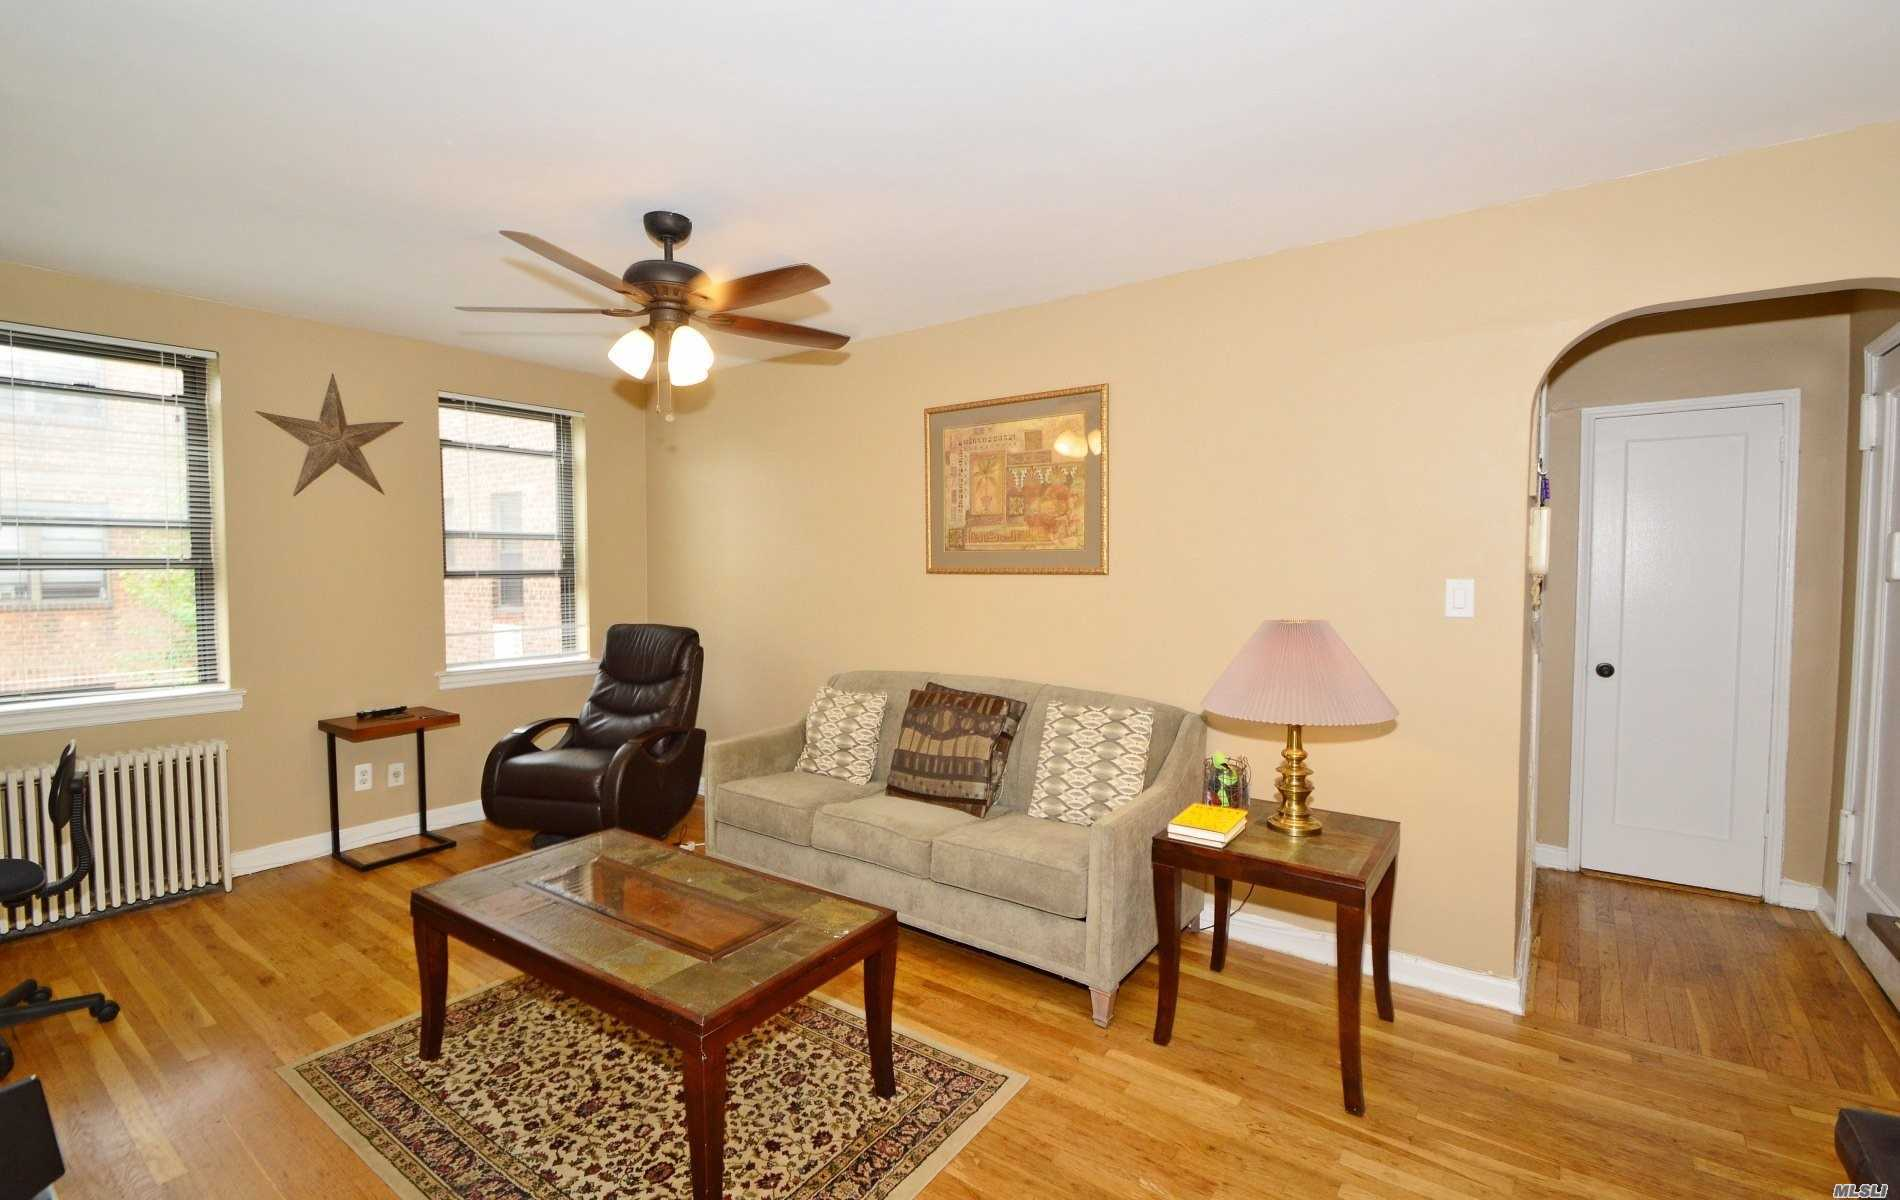 Spacious And Sun Filled One Bedroom; Located In Quiet Court Yard Setting. Close Proximity To Bustling Bell Blvd. Walk To Lirr, Close Proximity To Q27, Q12 & 13. Convenience And Affordability Make This A Must See!